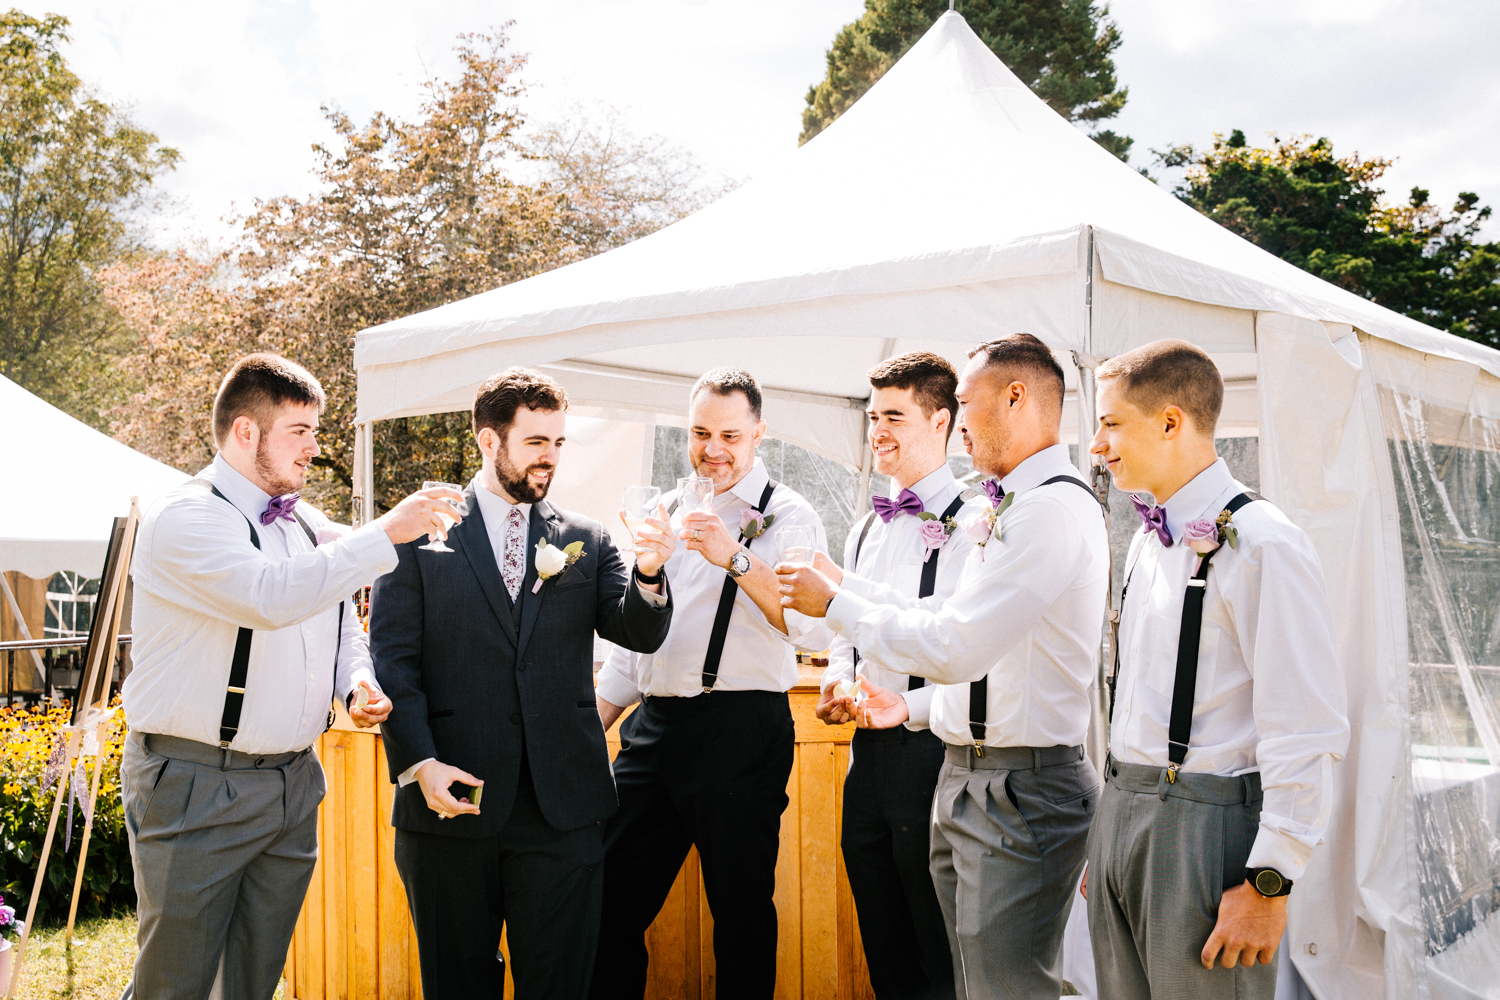 groomsmen-groom-rhode-island-new-england-gwyn-careg-inn-fall-wedding.jpg